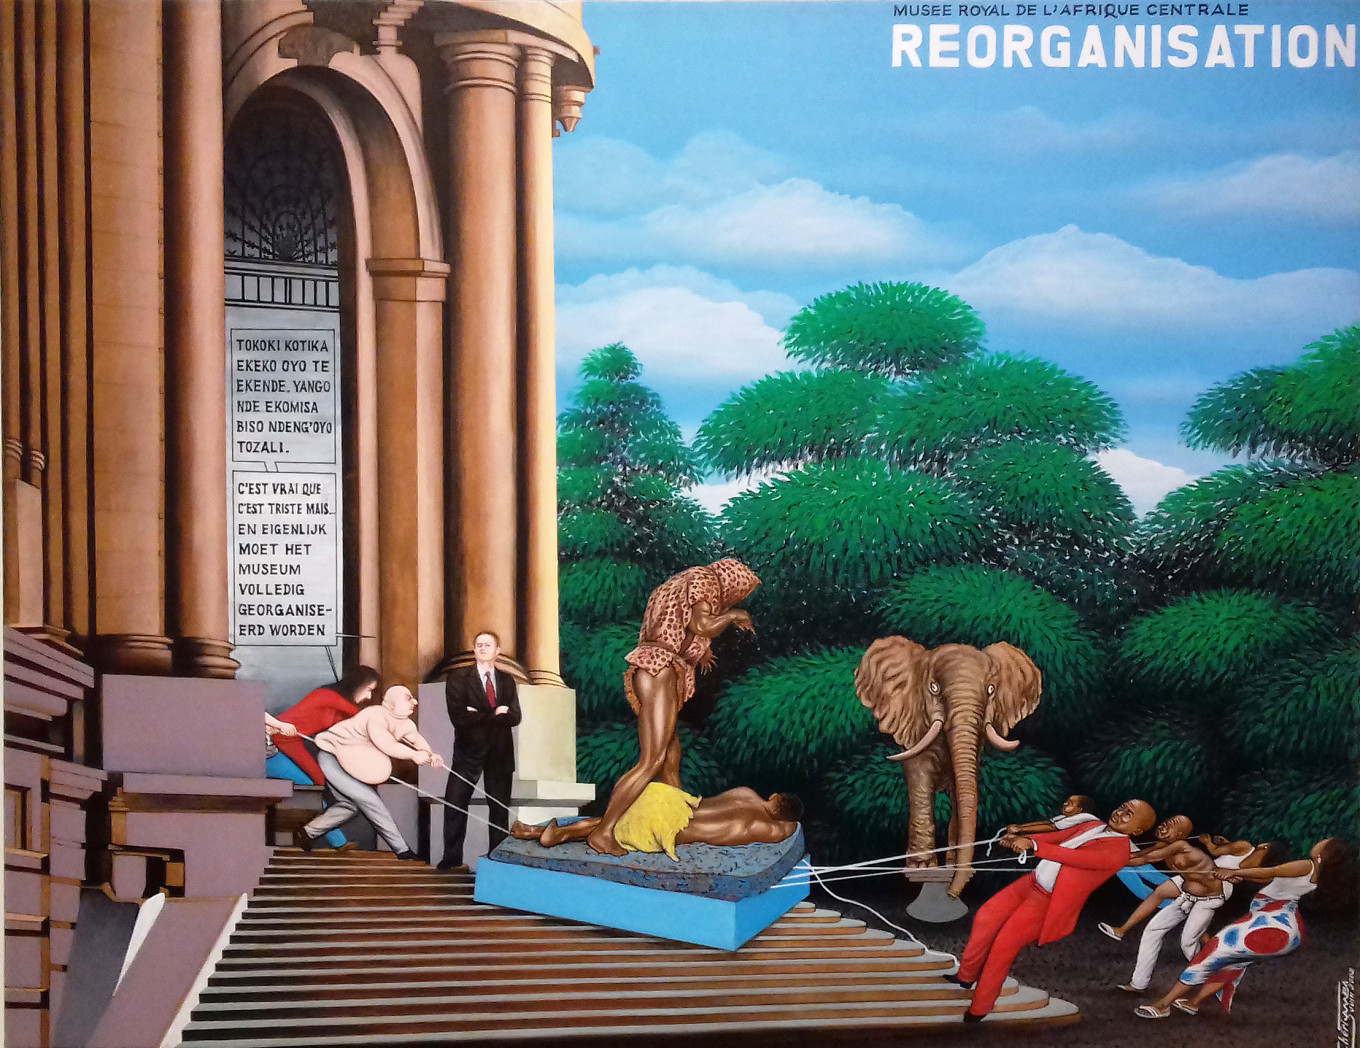 'Reorganisation' depicts the struggle for control over the representation of Congolese culture at the Royal Museum for Central Africa in Belgium.				 				ROYAL MUSEUM FOR CENTRAL AFRICA, TERVUREN